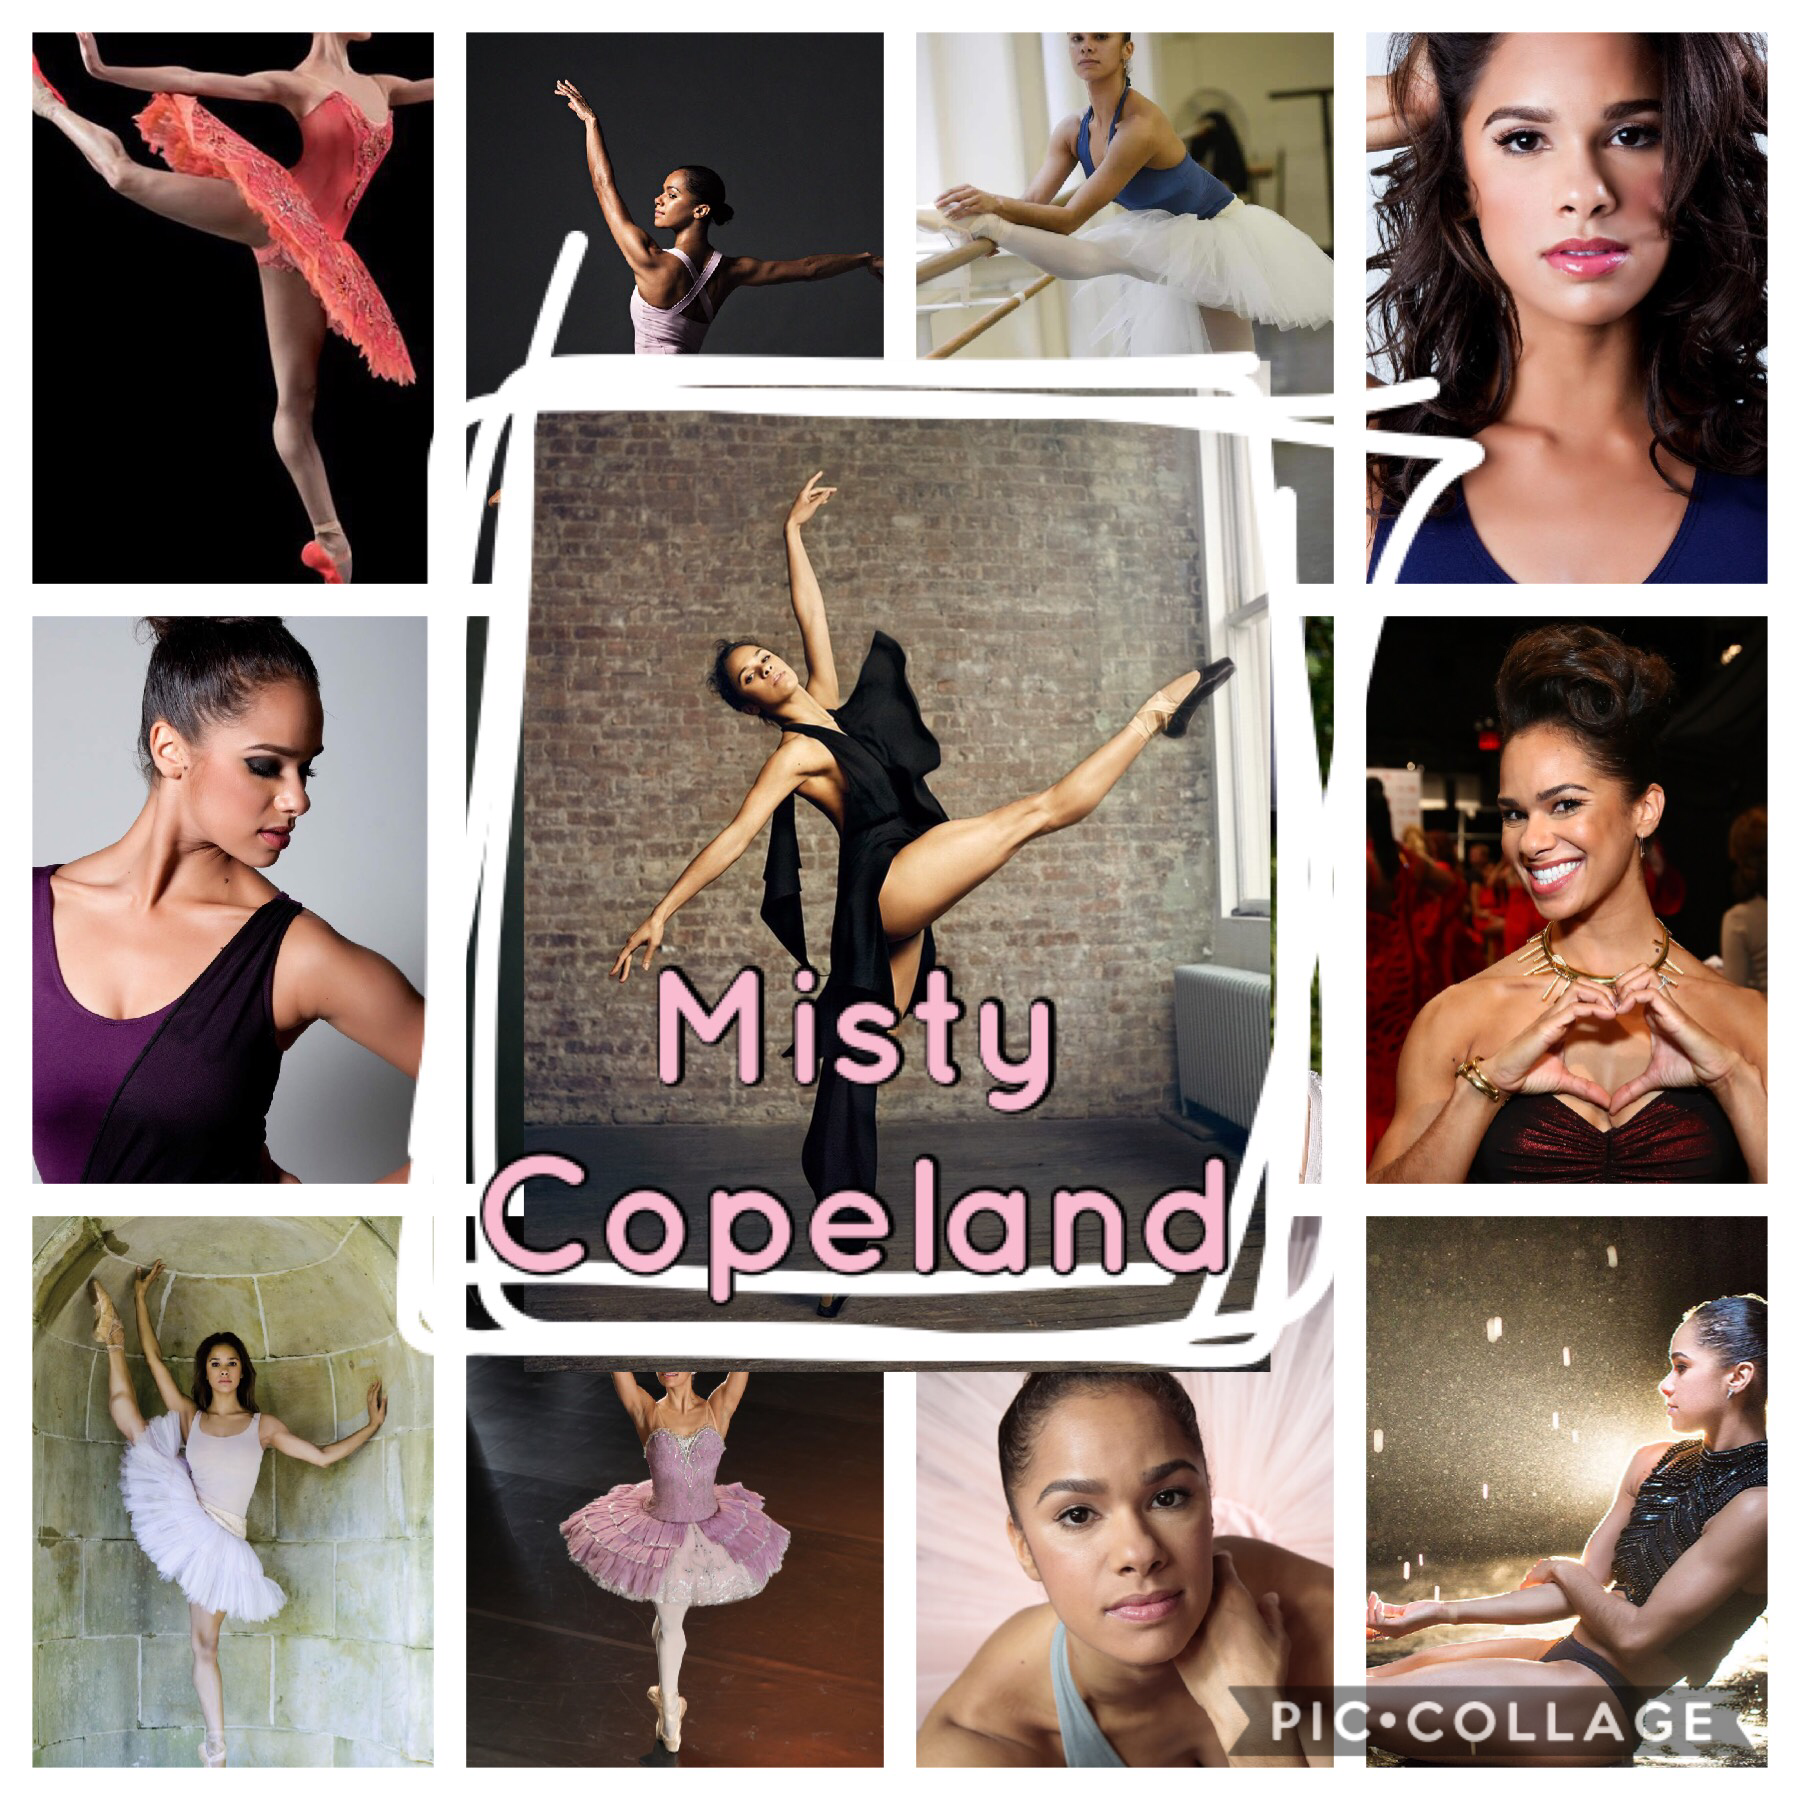 I freaking love Misty Copeland she is so amazing I hope one day I can be almost as good a dancer as her 😁